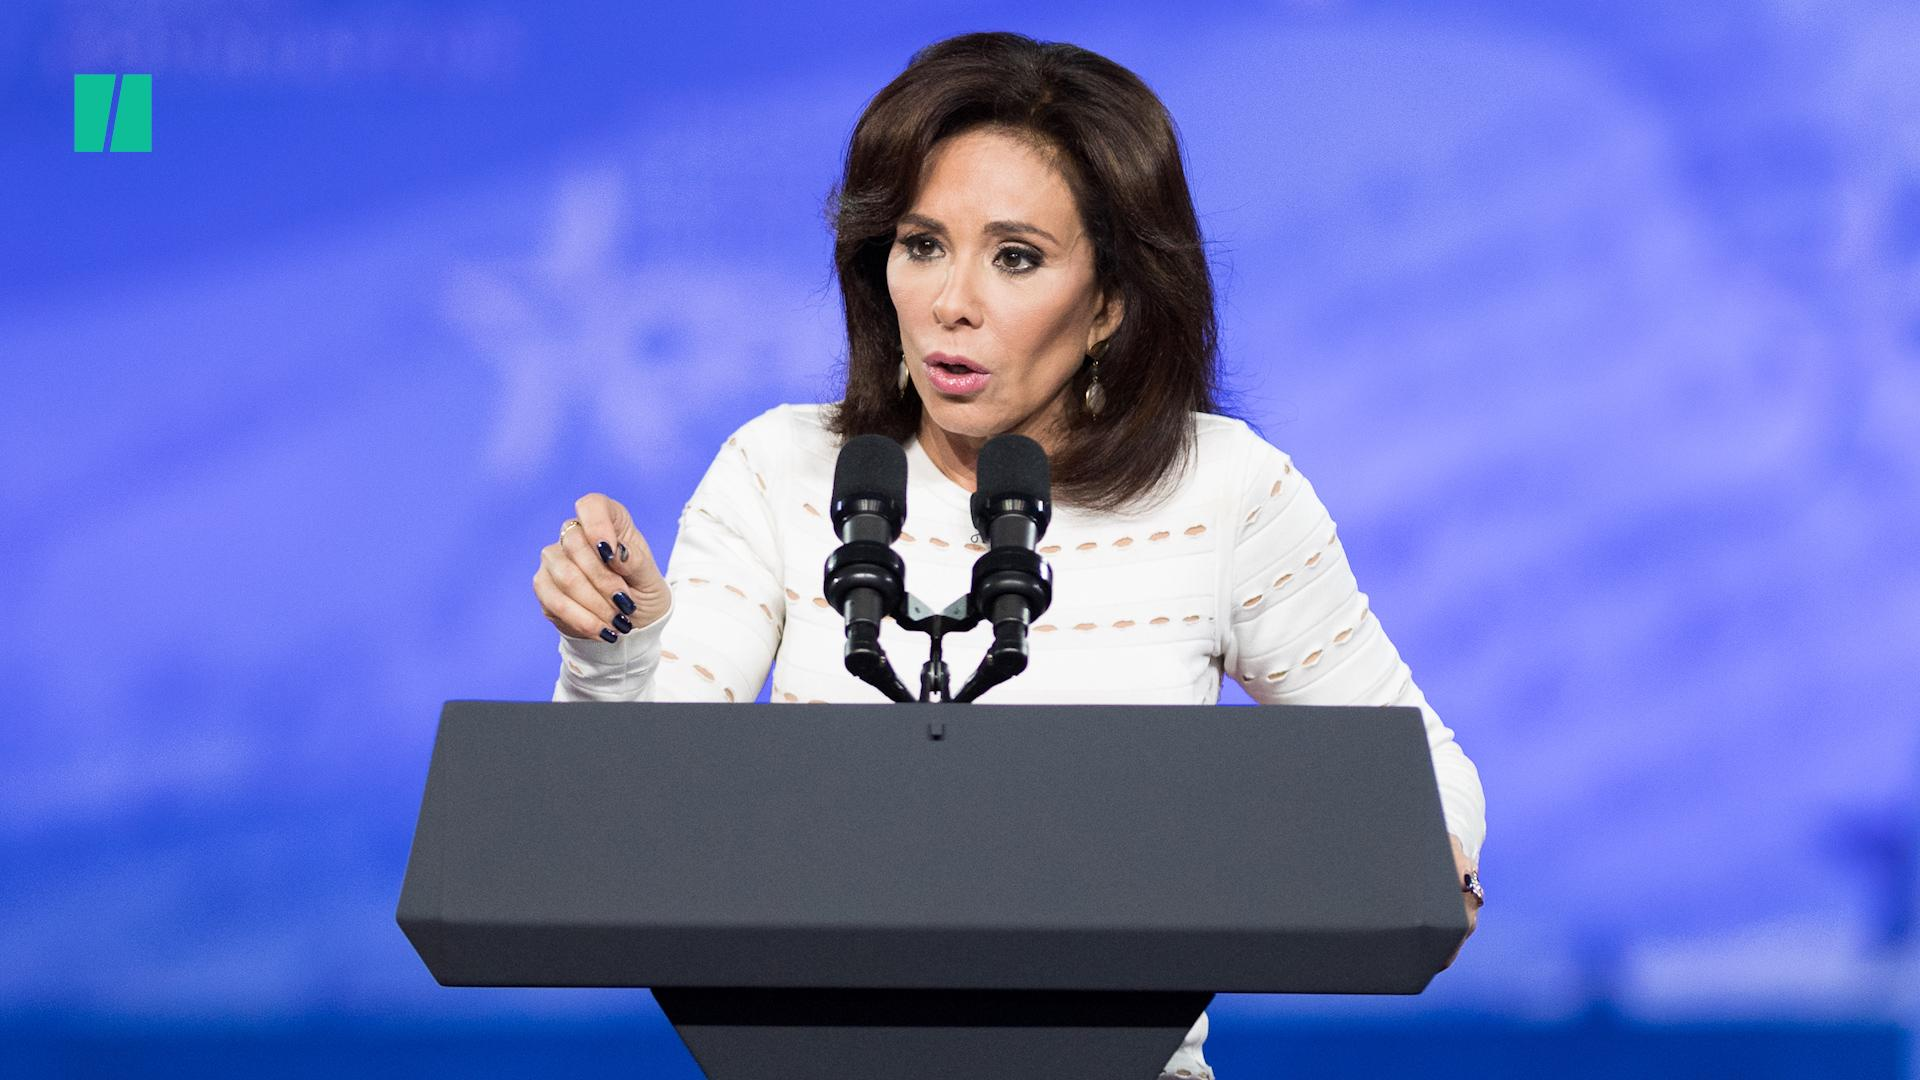 Jeanine Pirro Caught On Hot Mic Beefing About Fox News Suspension